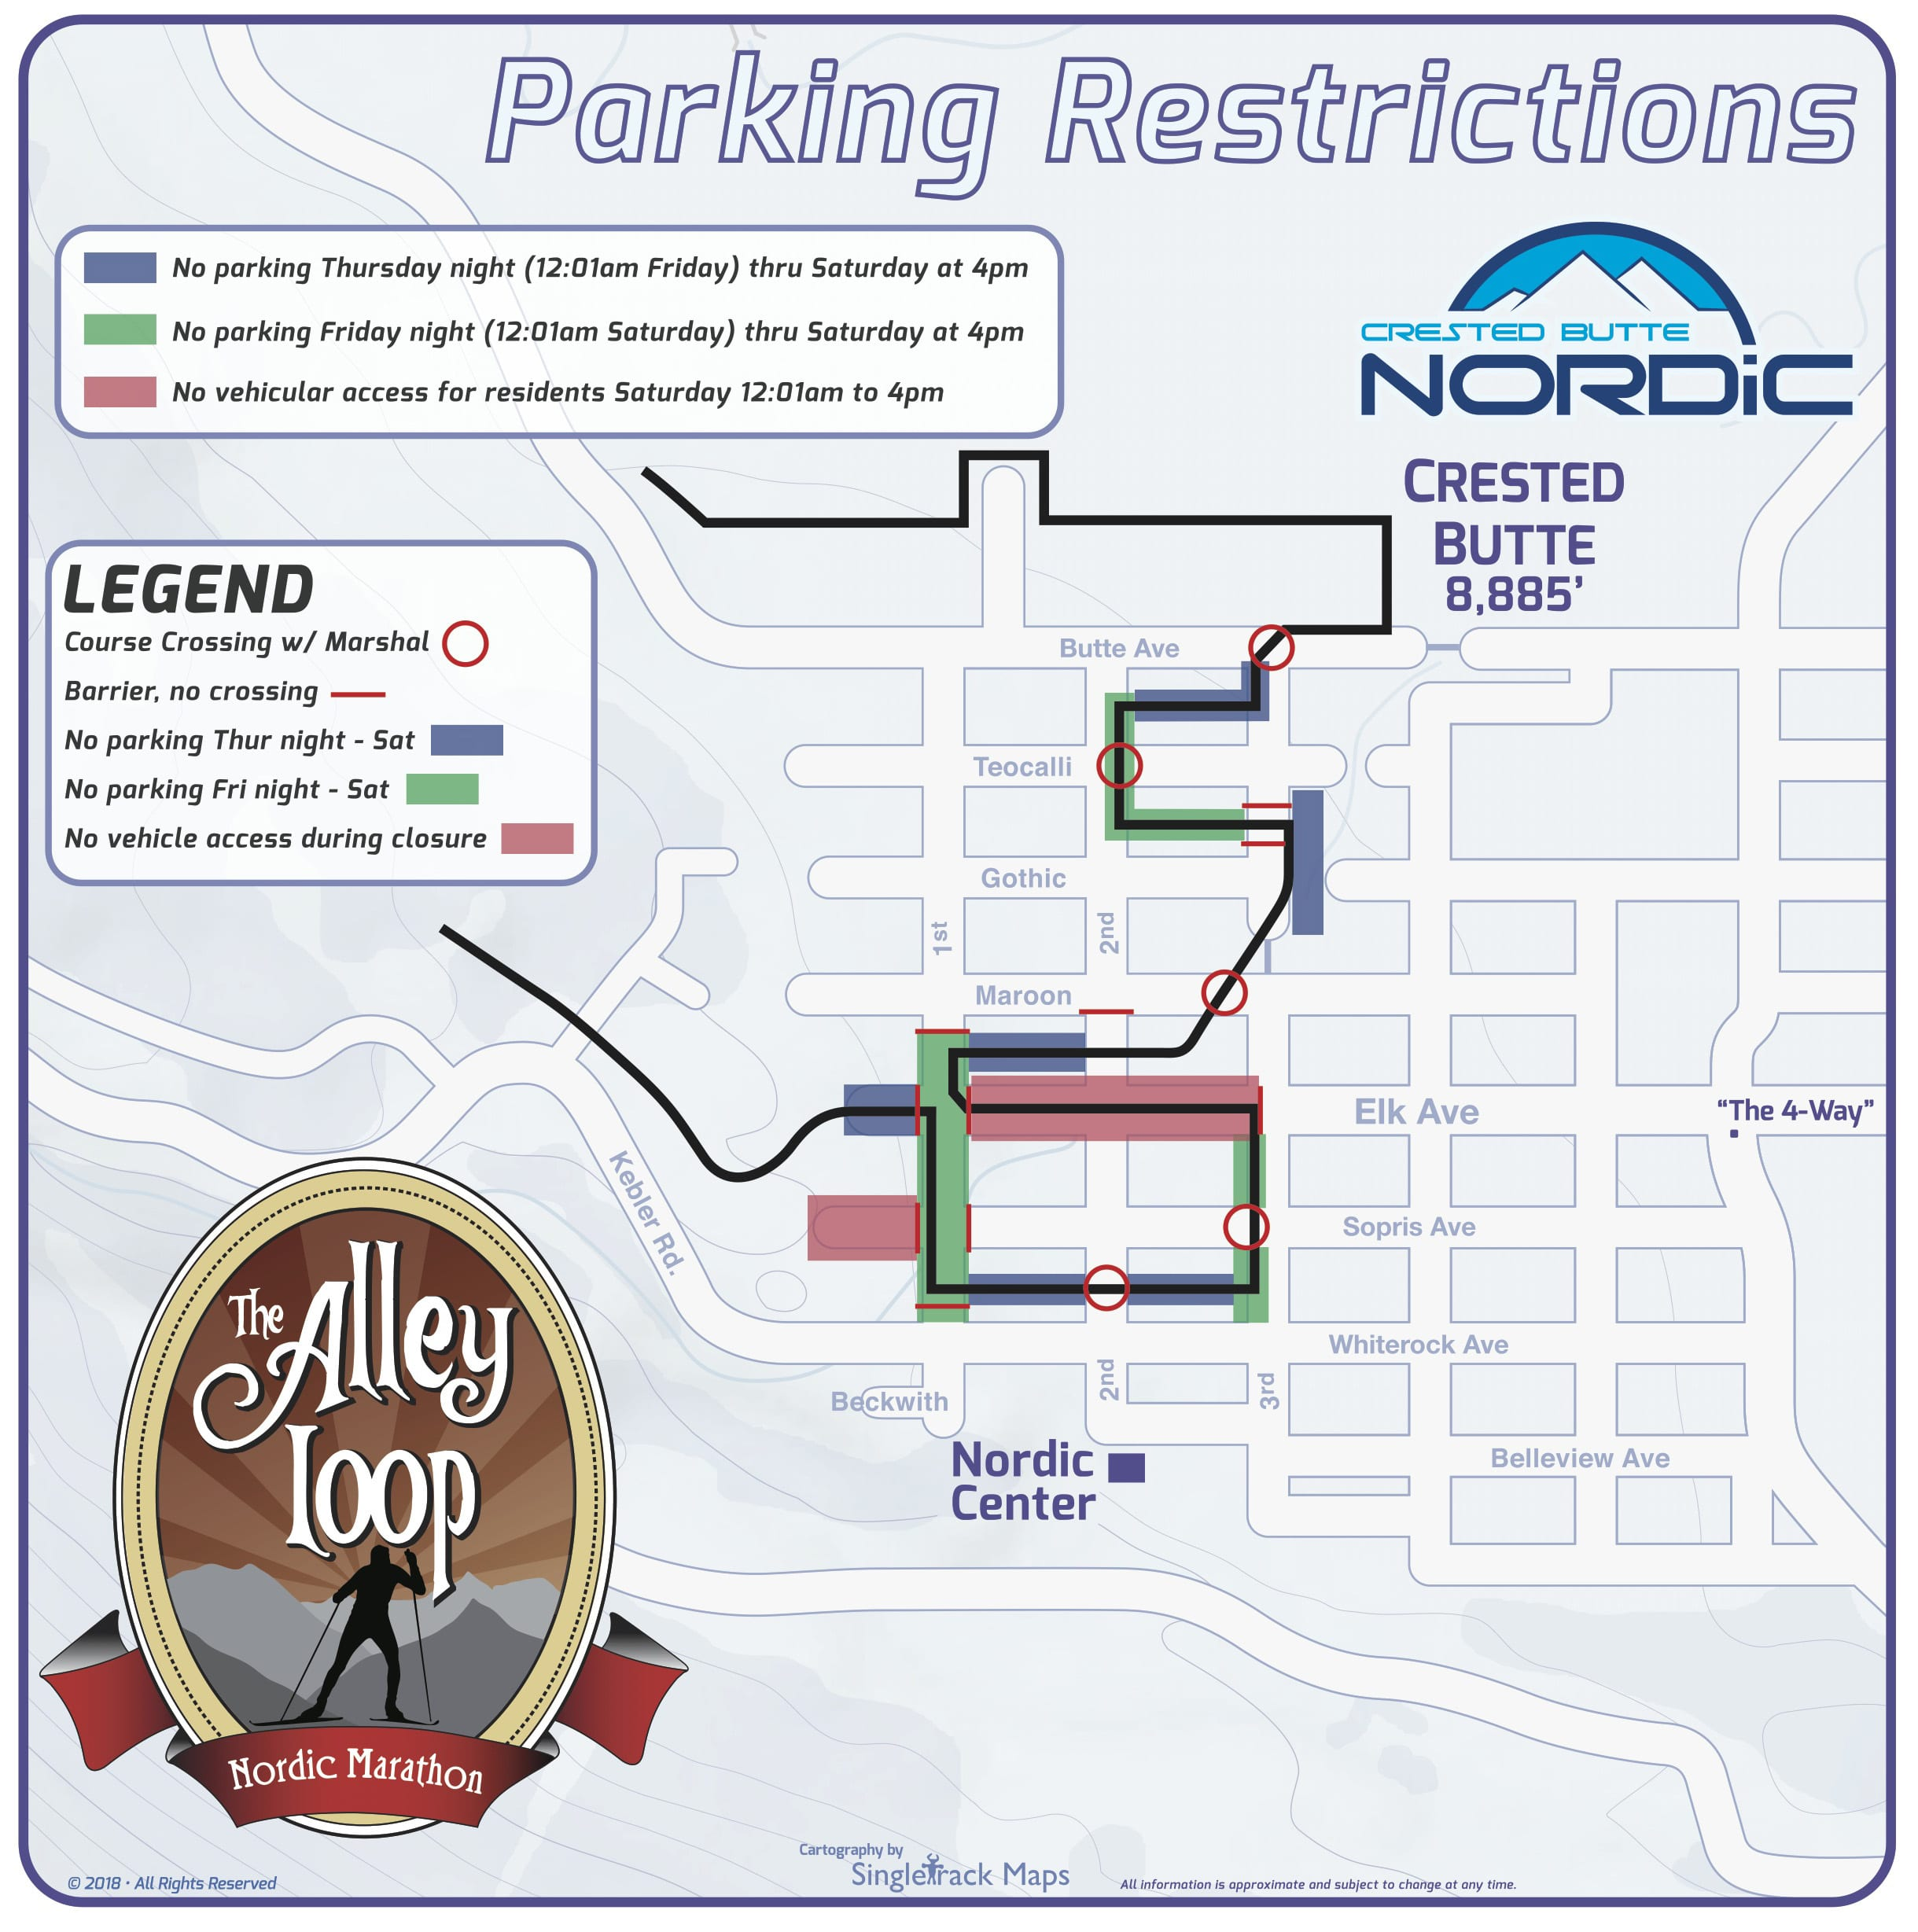 Crested Butte Nordic Parking Restrictions